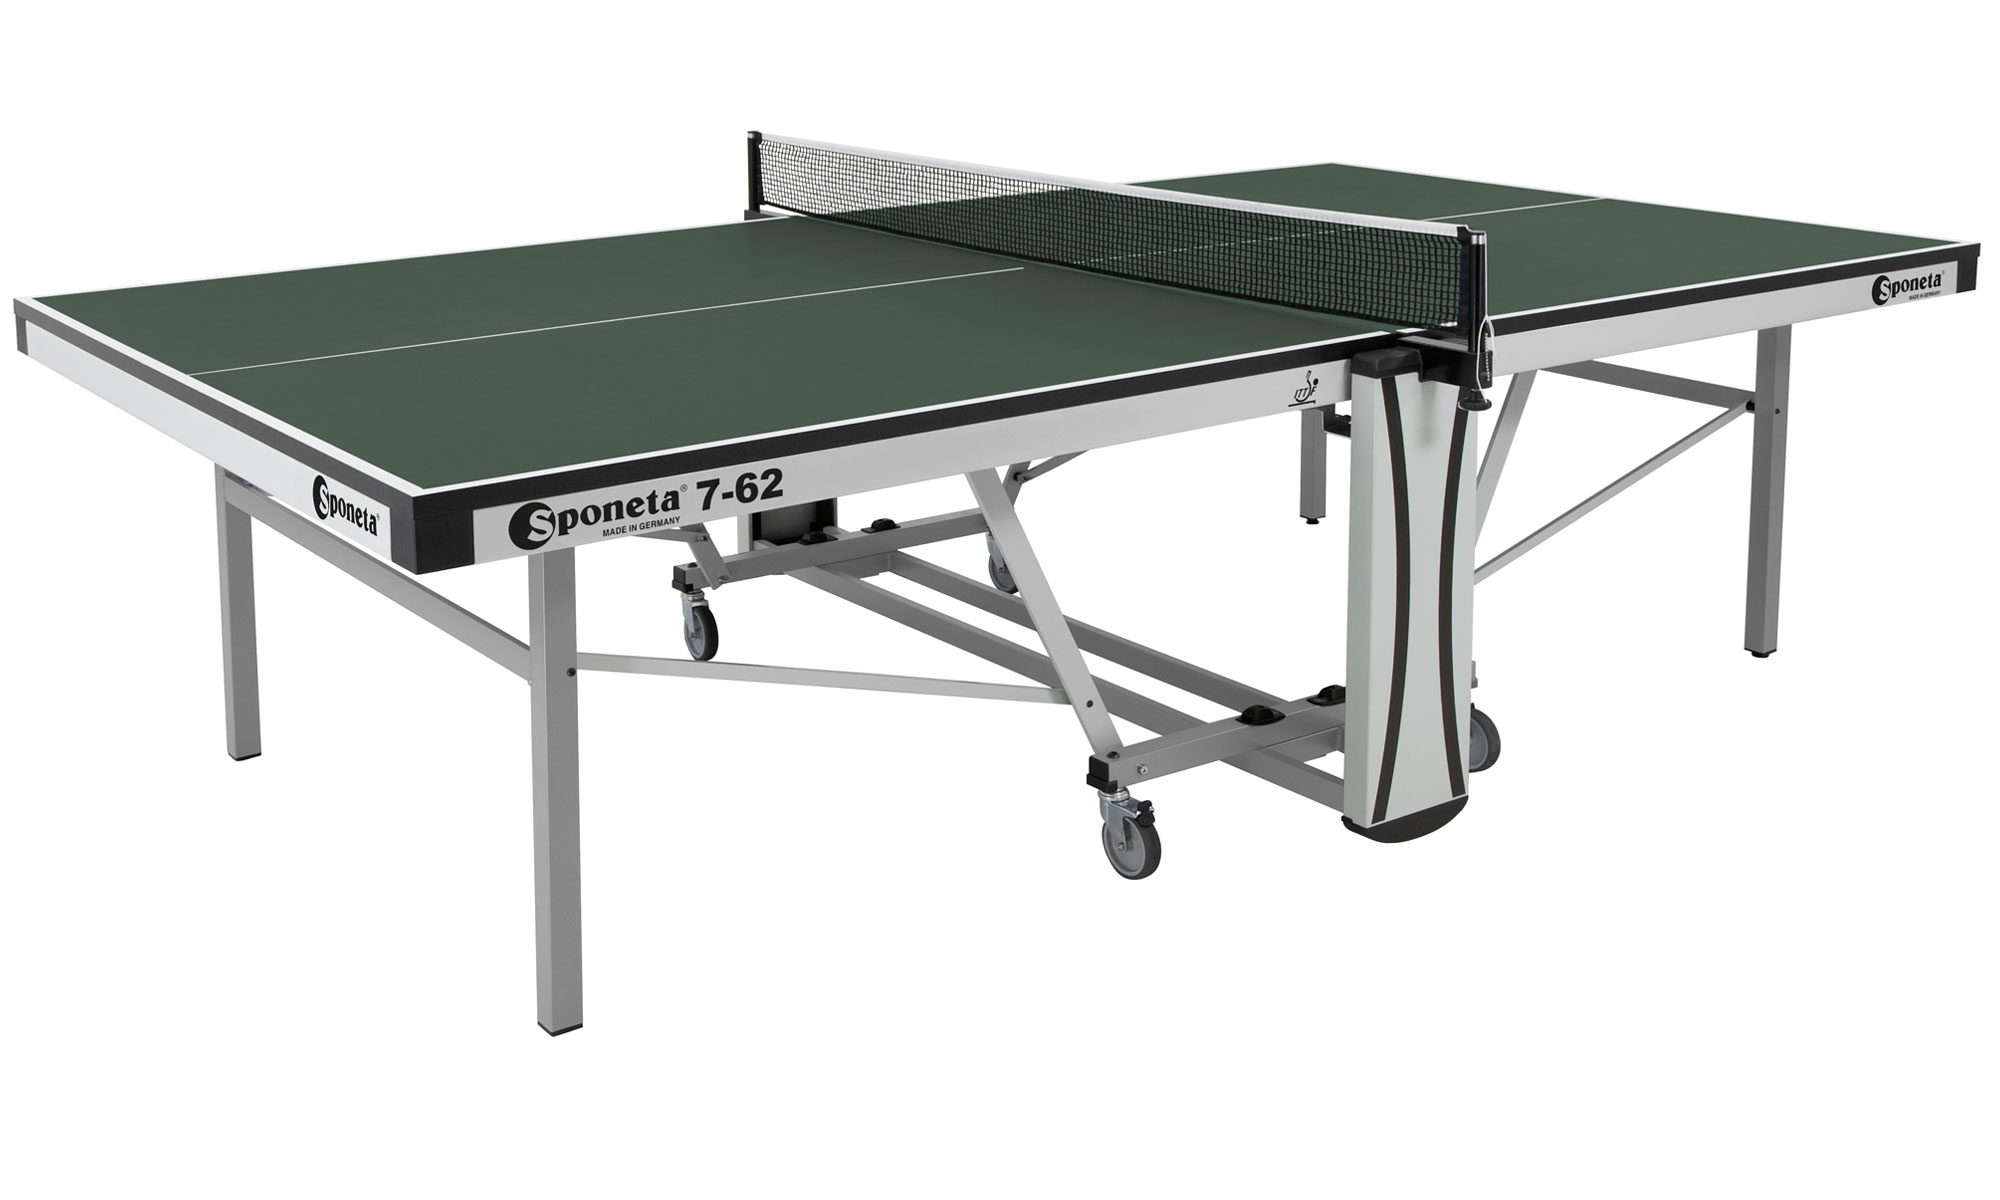 Sponeta Auto Compact ITTF Indoor table tennis table in Green